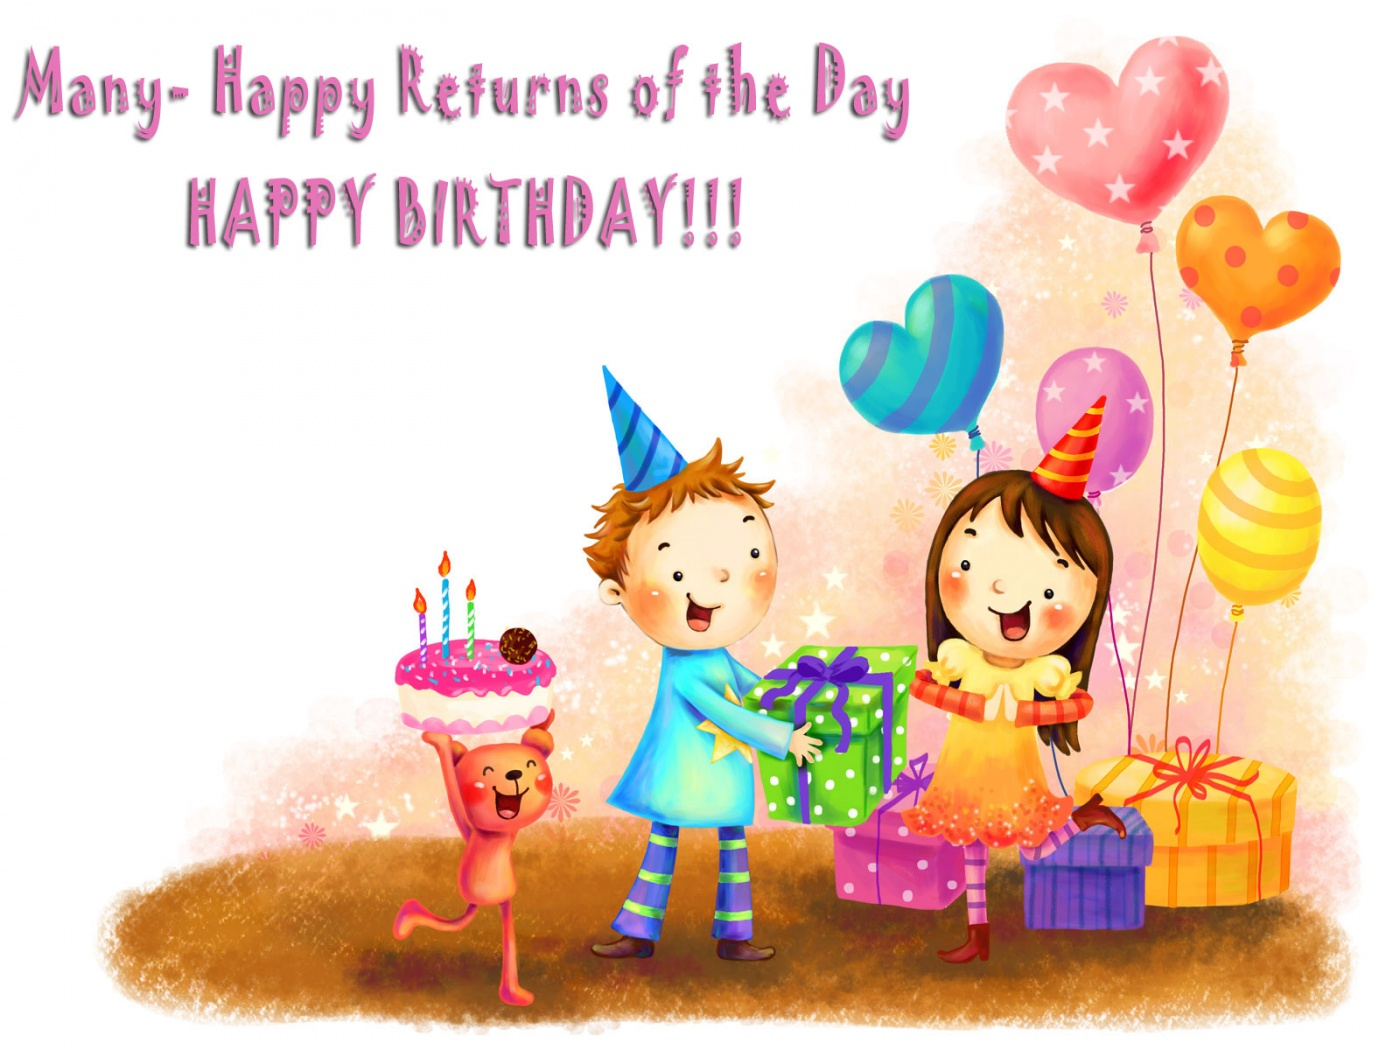 Happy birthday sister greeting cards hd wishes wallpapers - Happy birthday card wallpaper ...